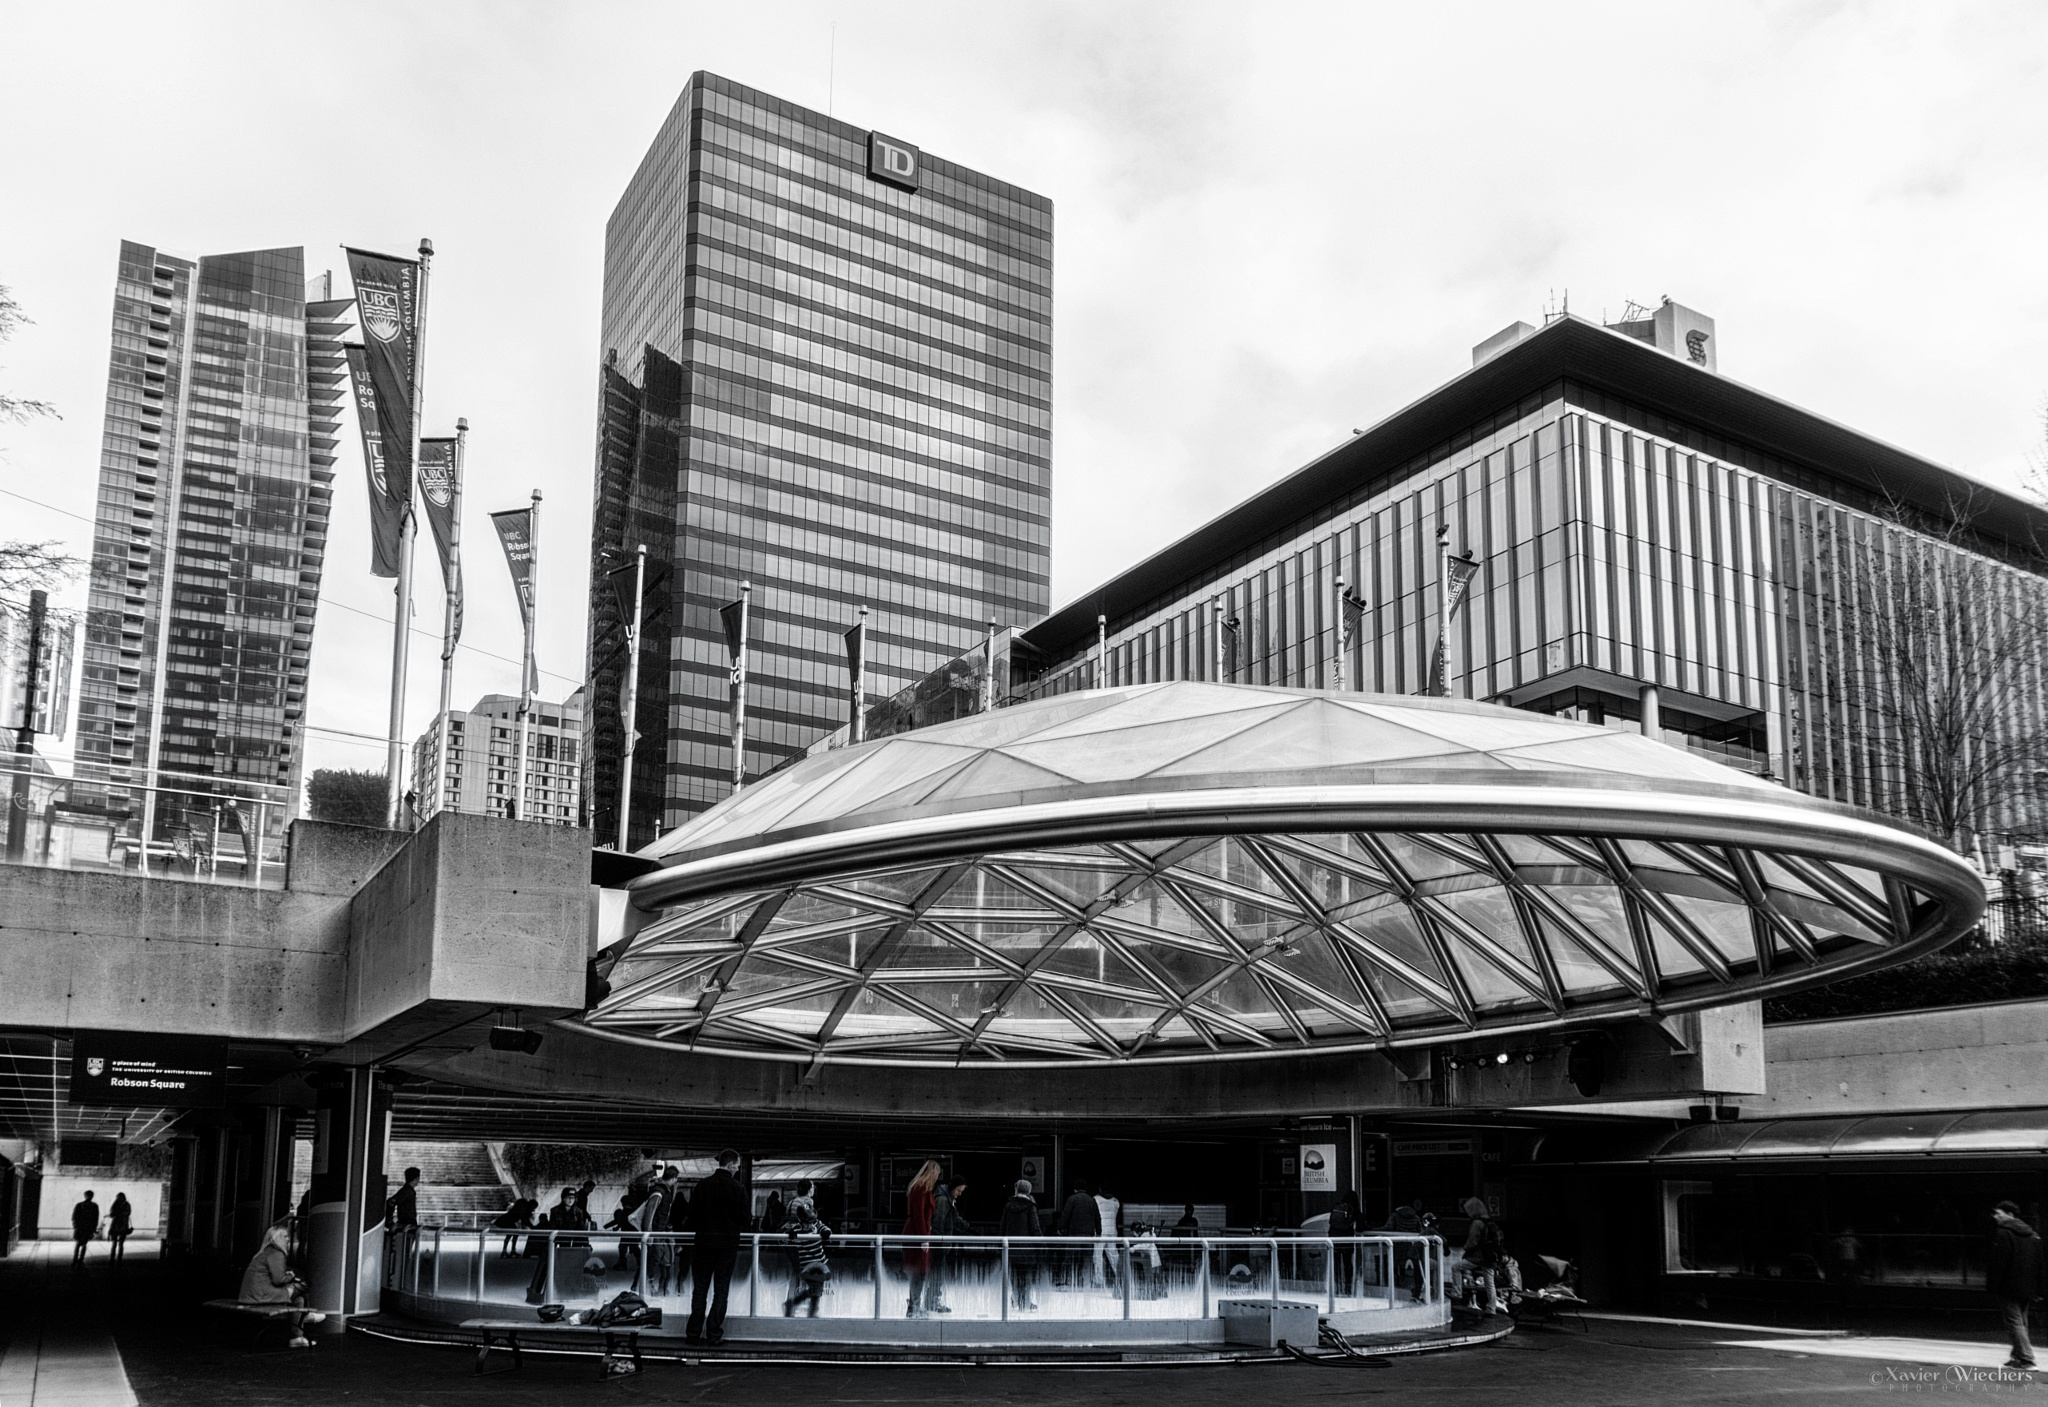 Robson Square Scating by xwiechers